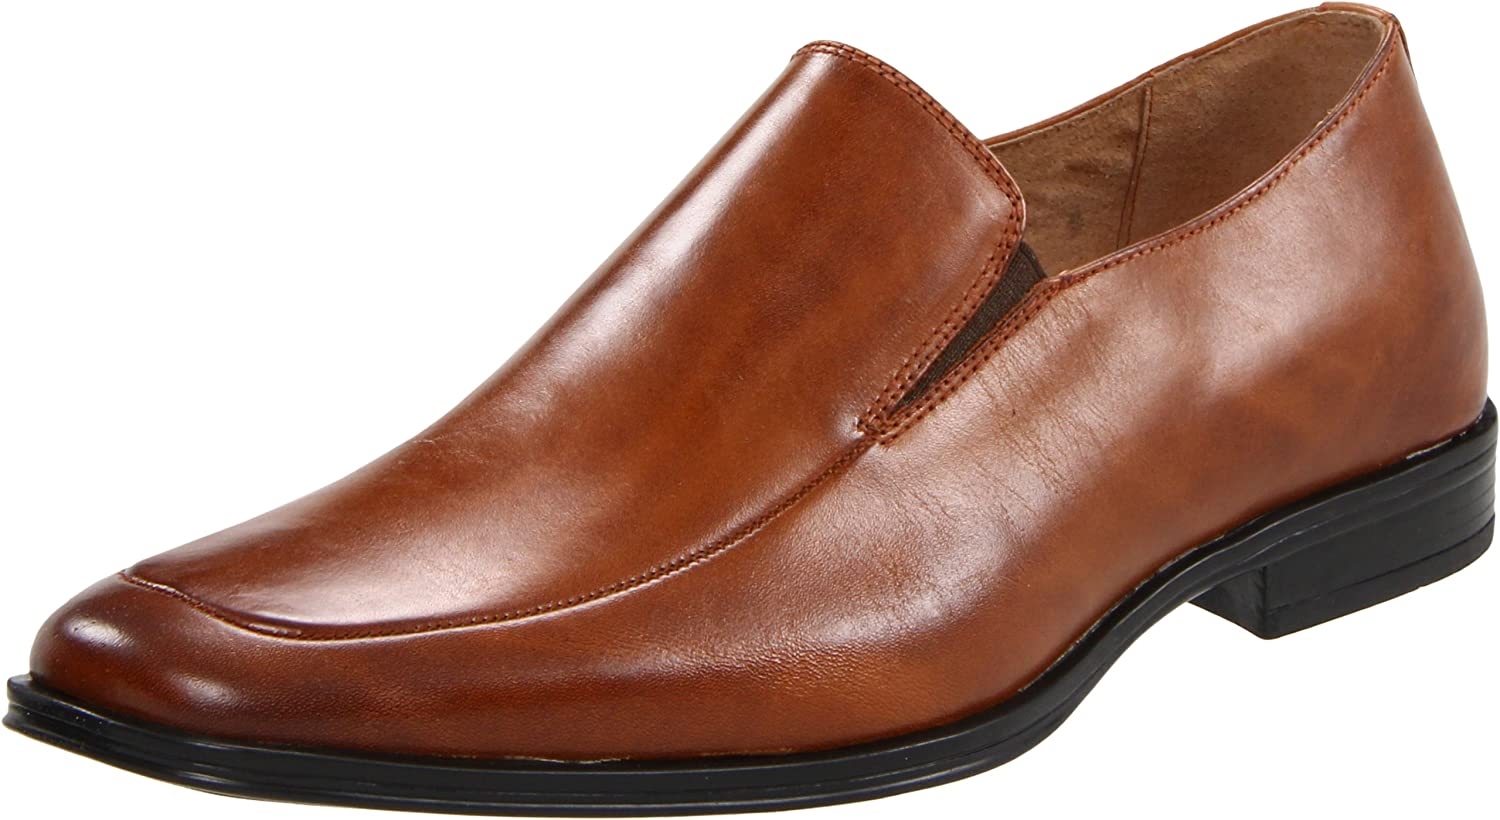 Stacy Indianapolis Mall Adams Men's security Malone Moccasin